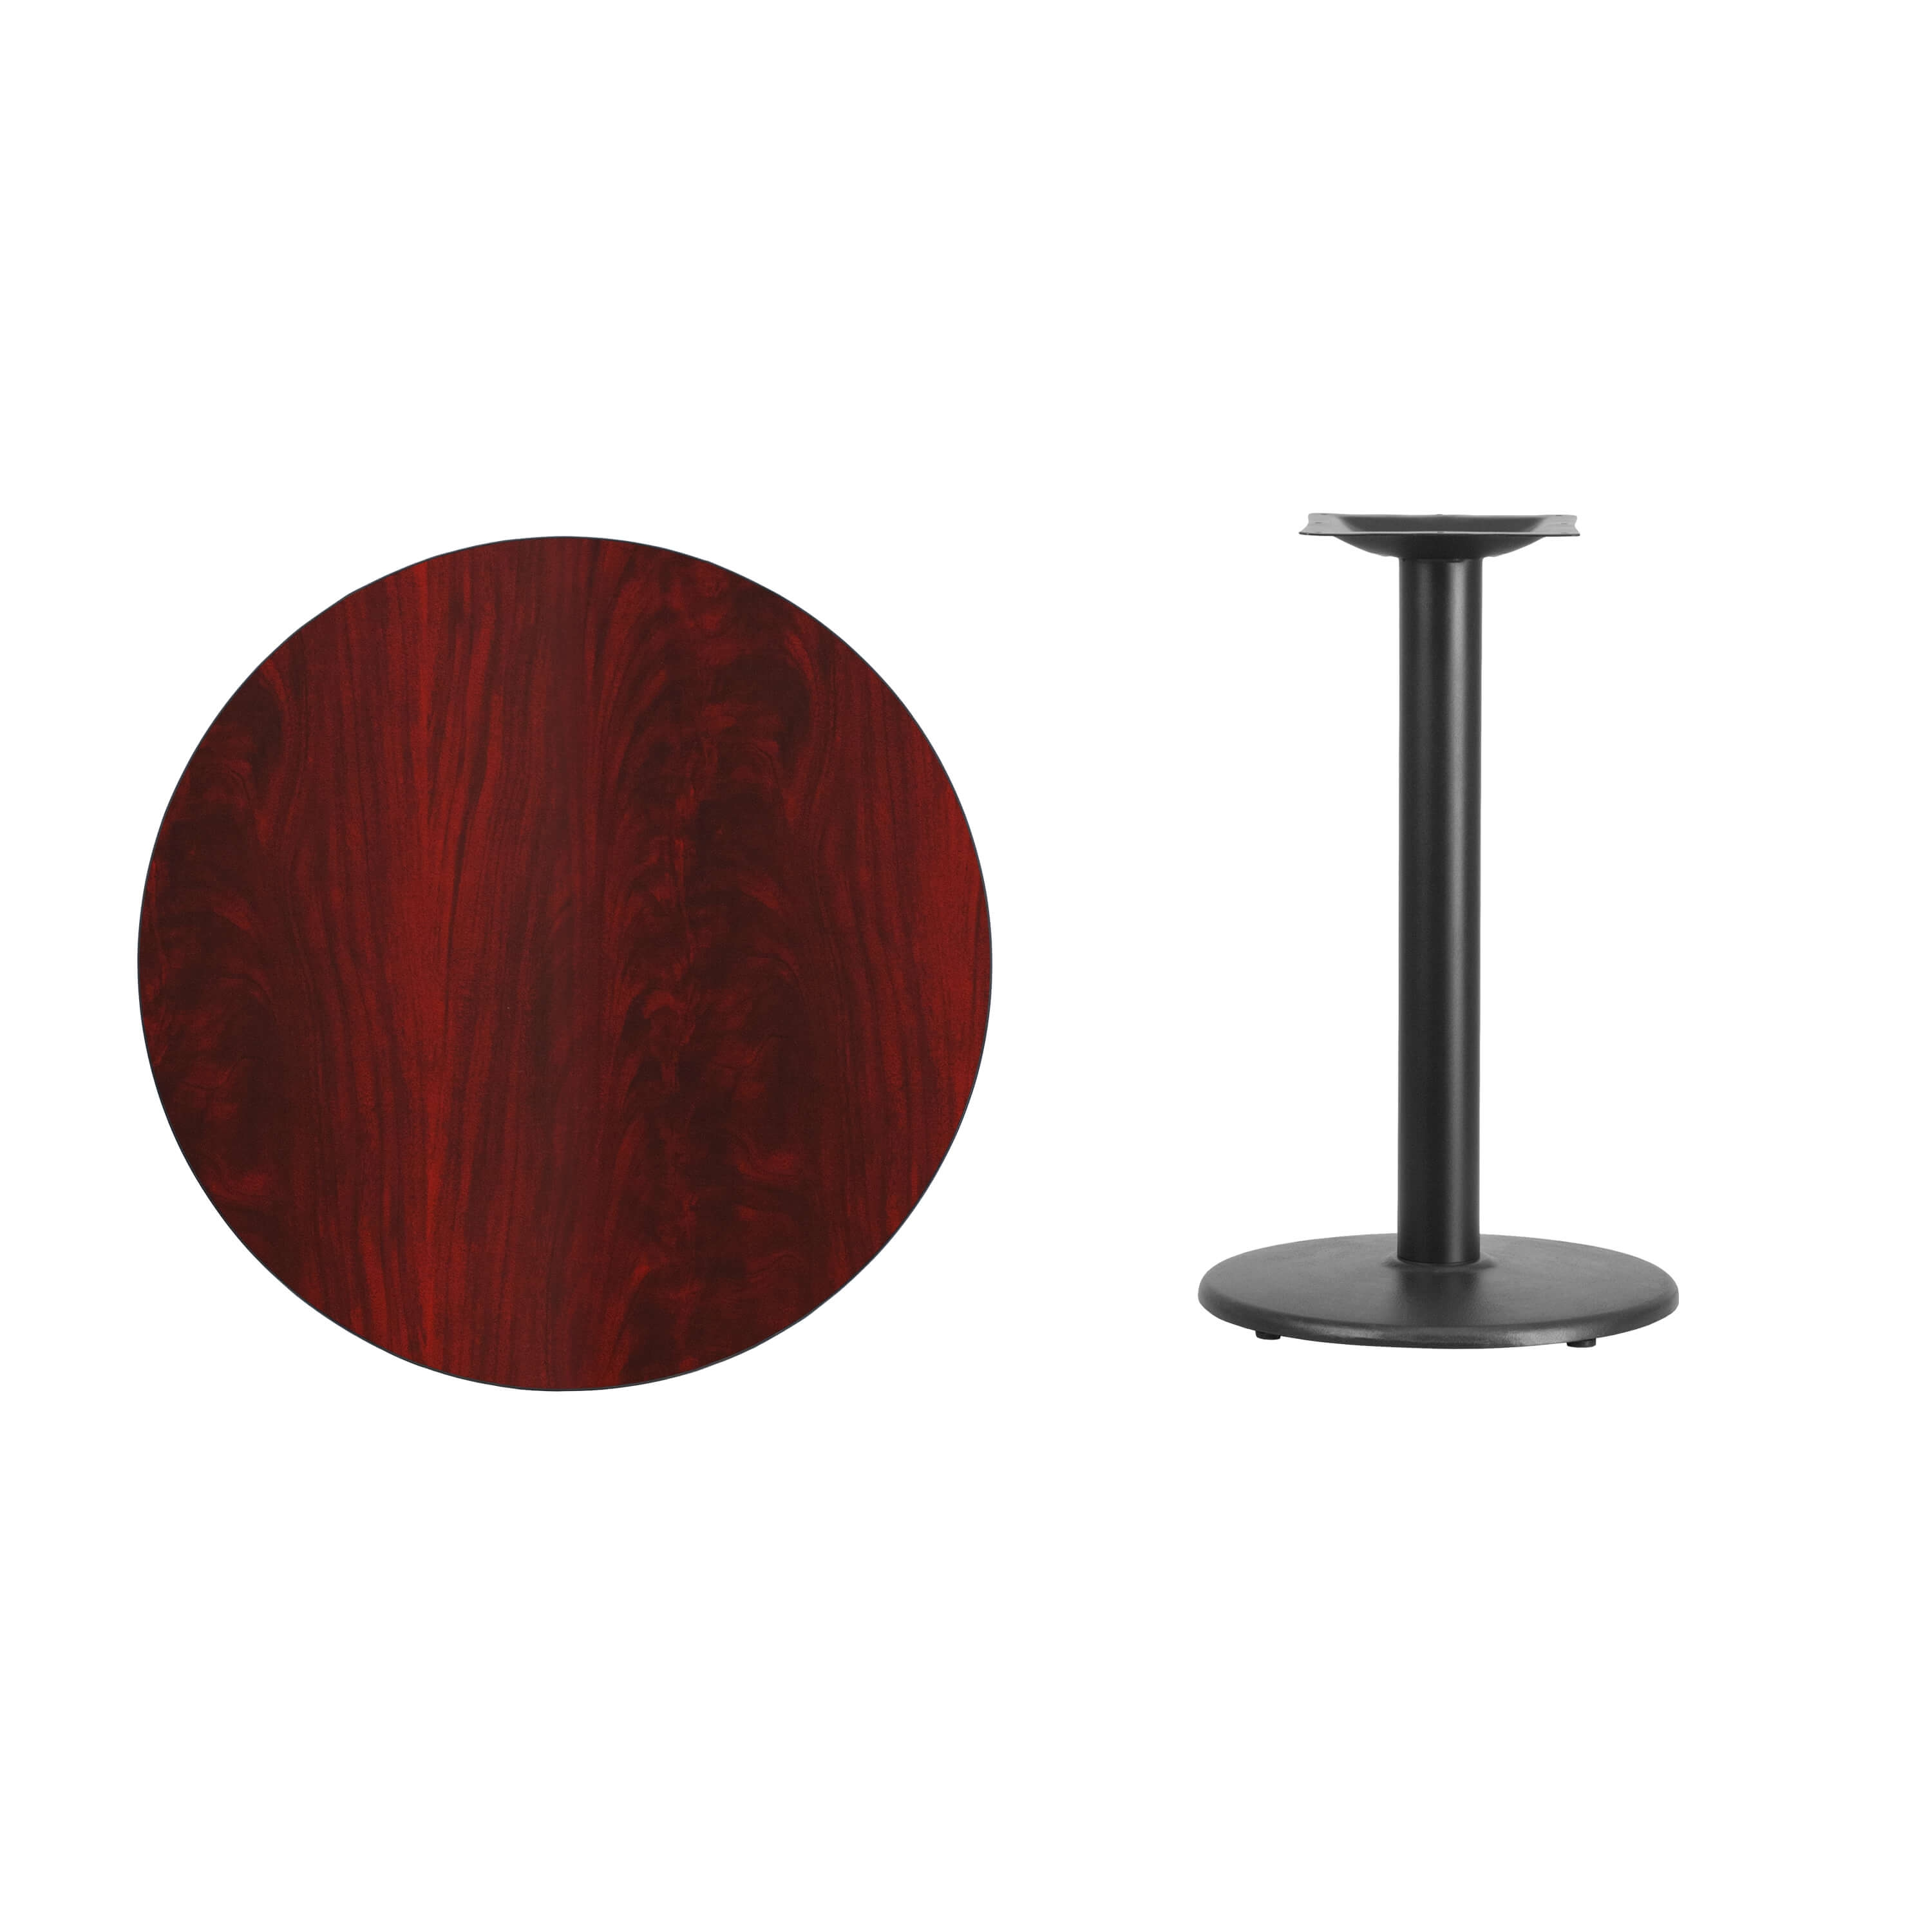 30inch round laminate table parts